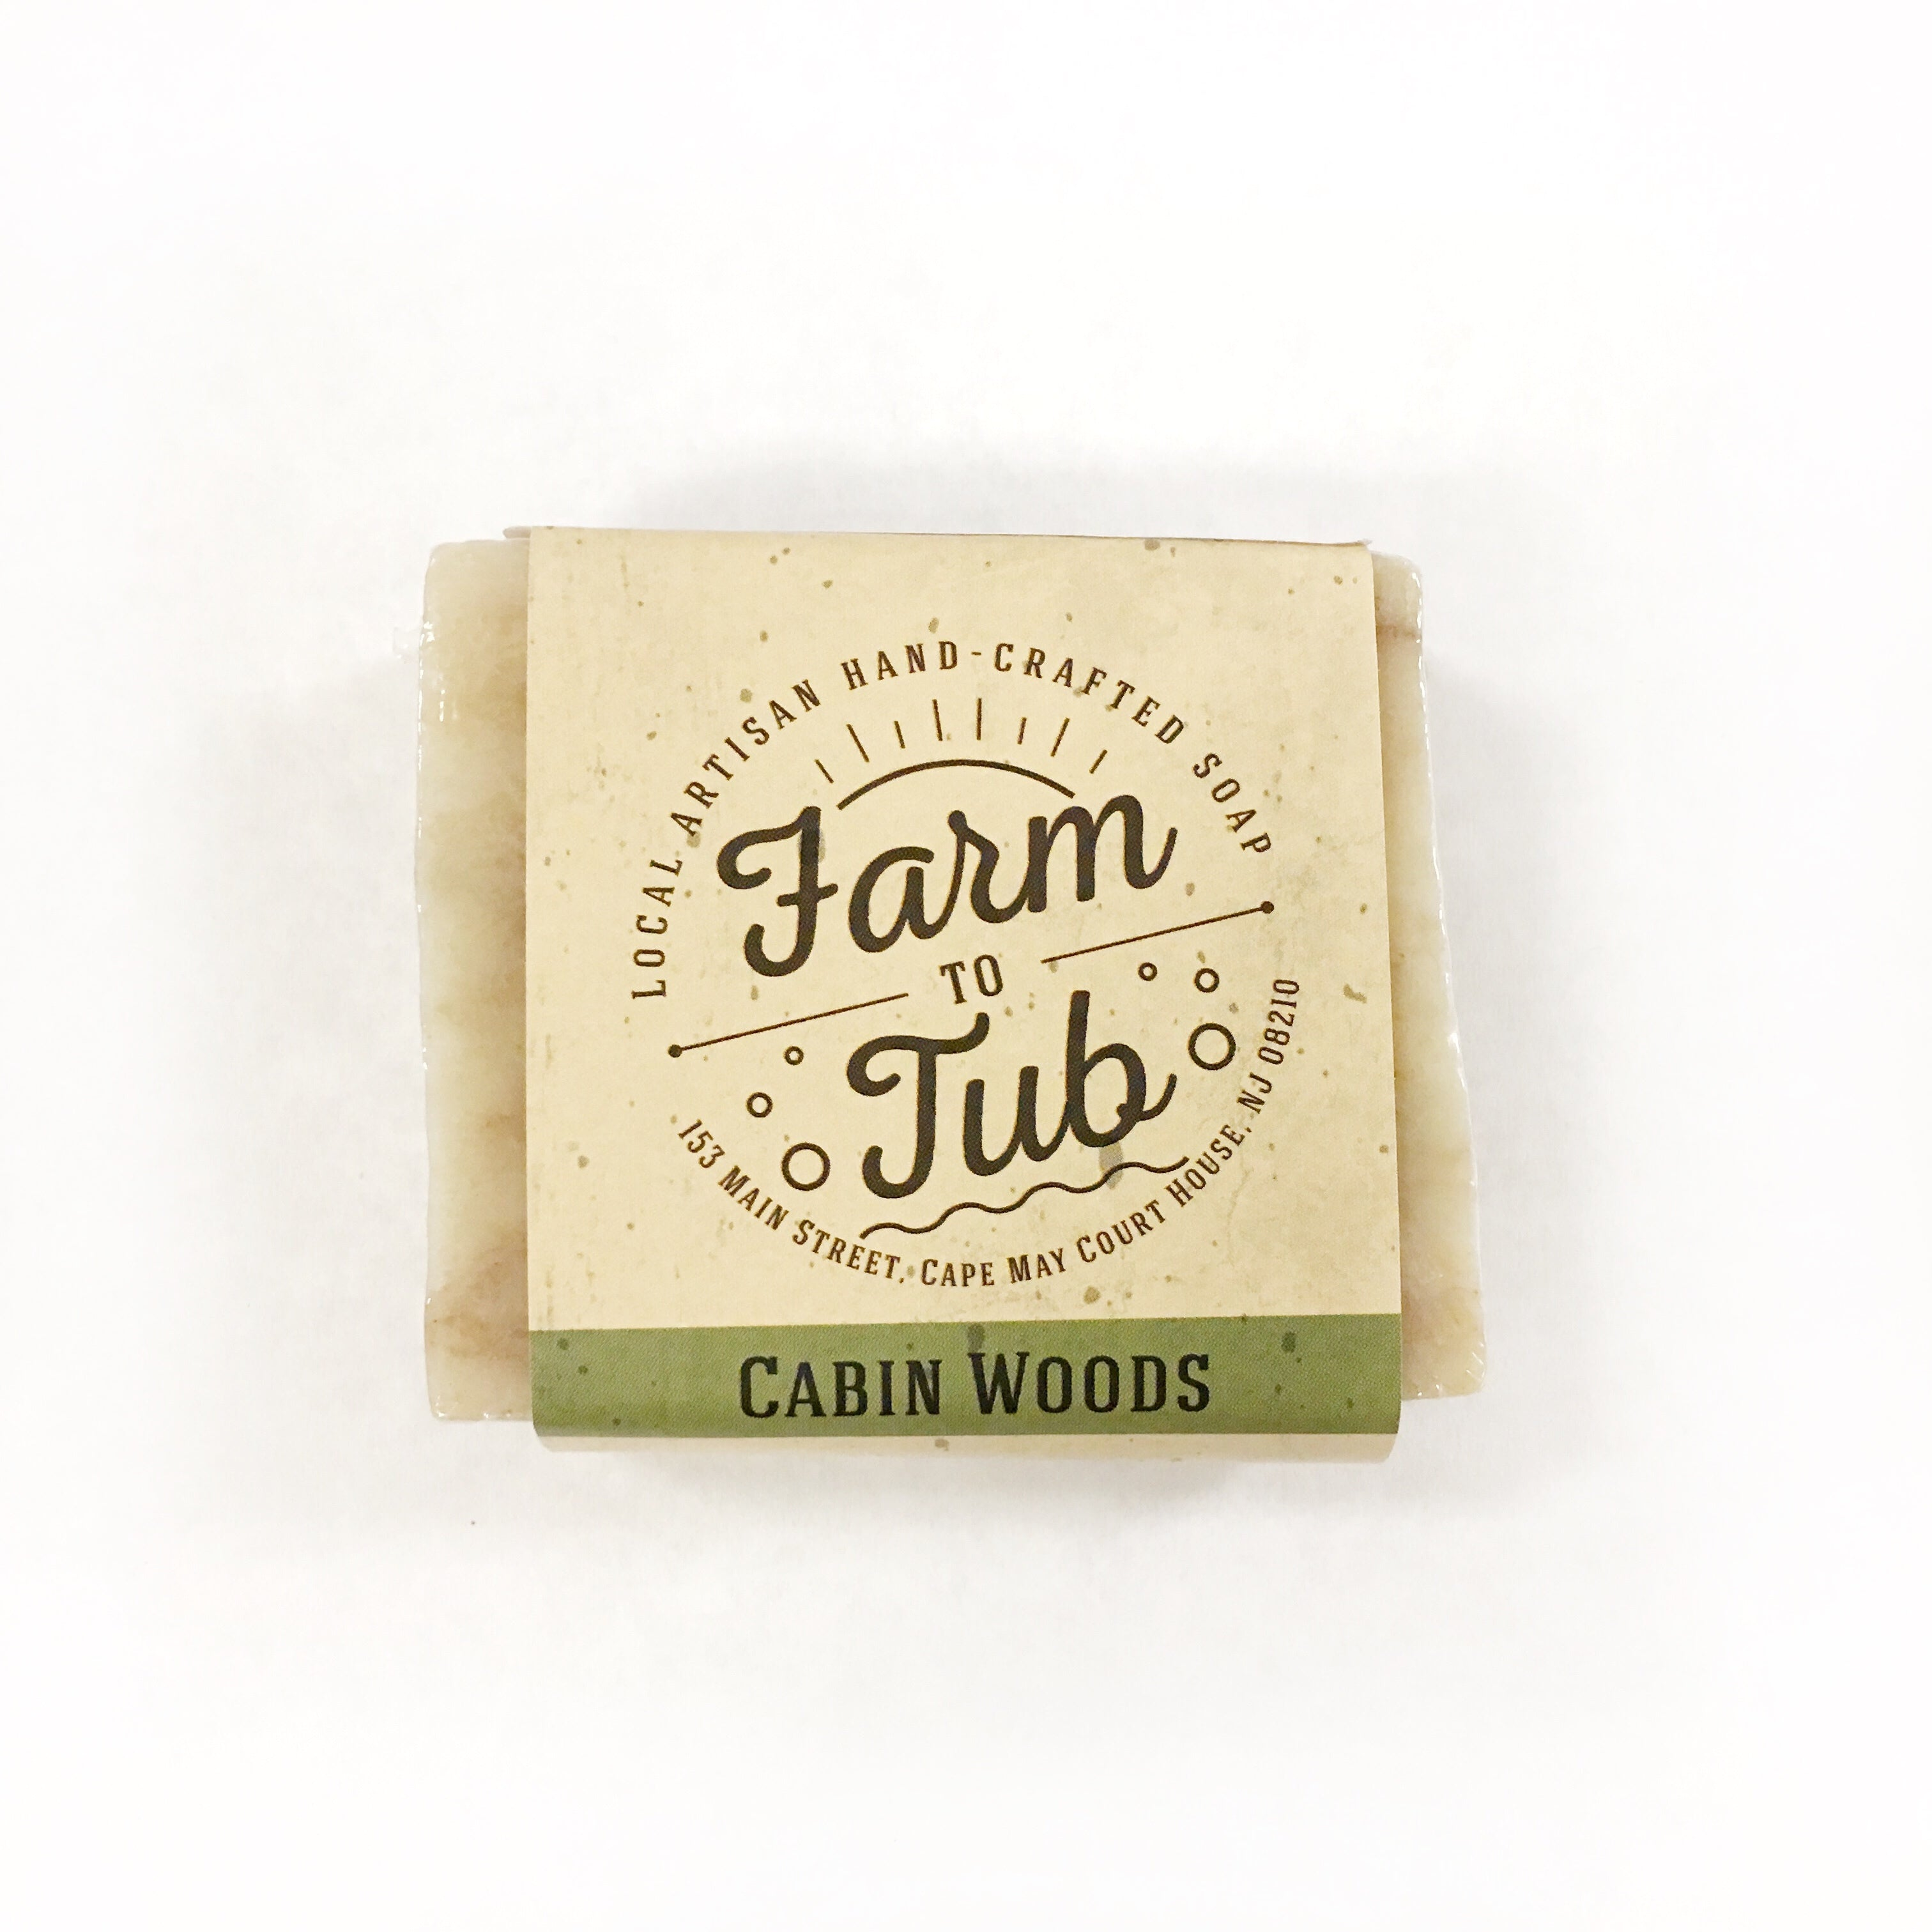 Windy Acres: Farm to Tub Soap - Cabin Woods